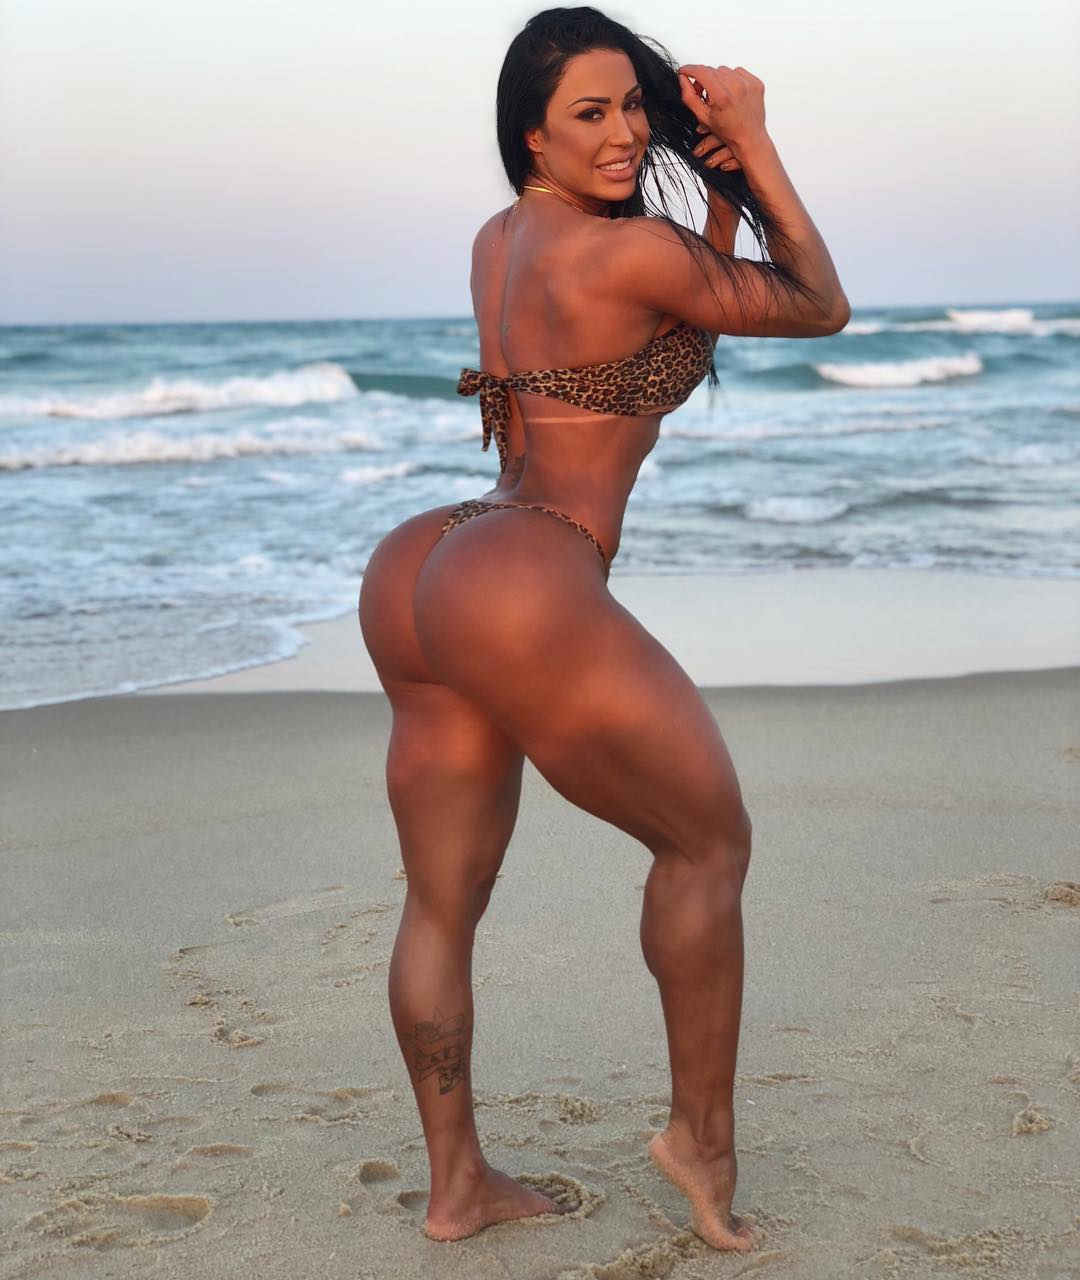 Photos Gracyanne Barbosa nudes (79 photos), Topless, Leaked, Boobs, butt 2018